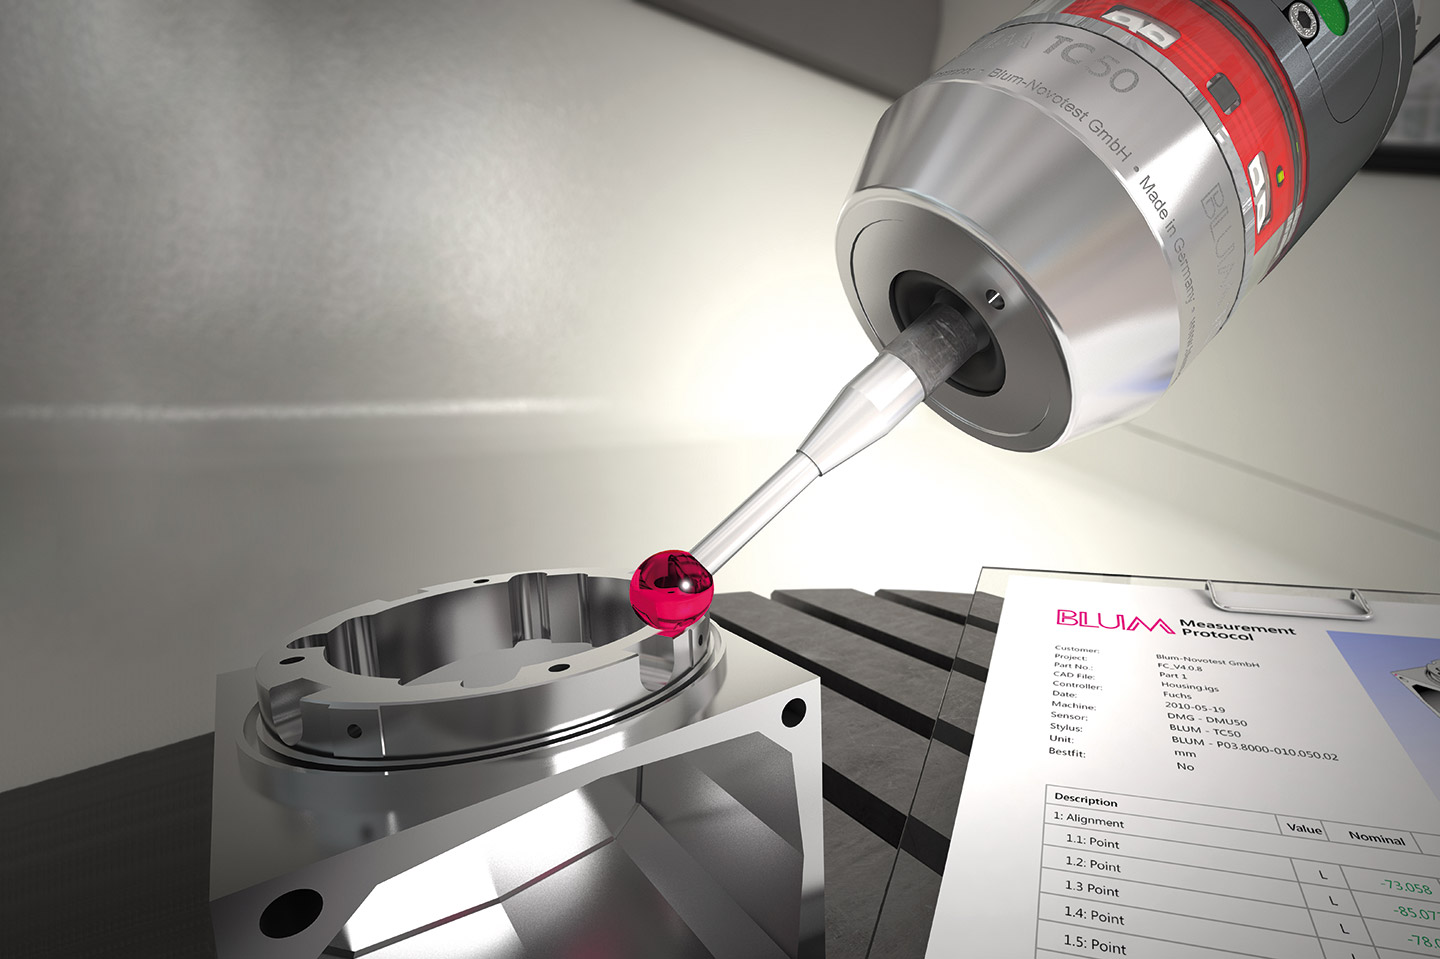 BLUM touch probes for machine tools